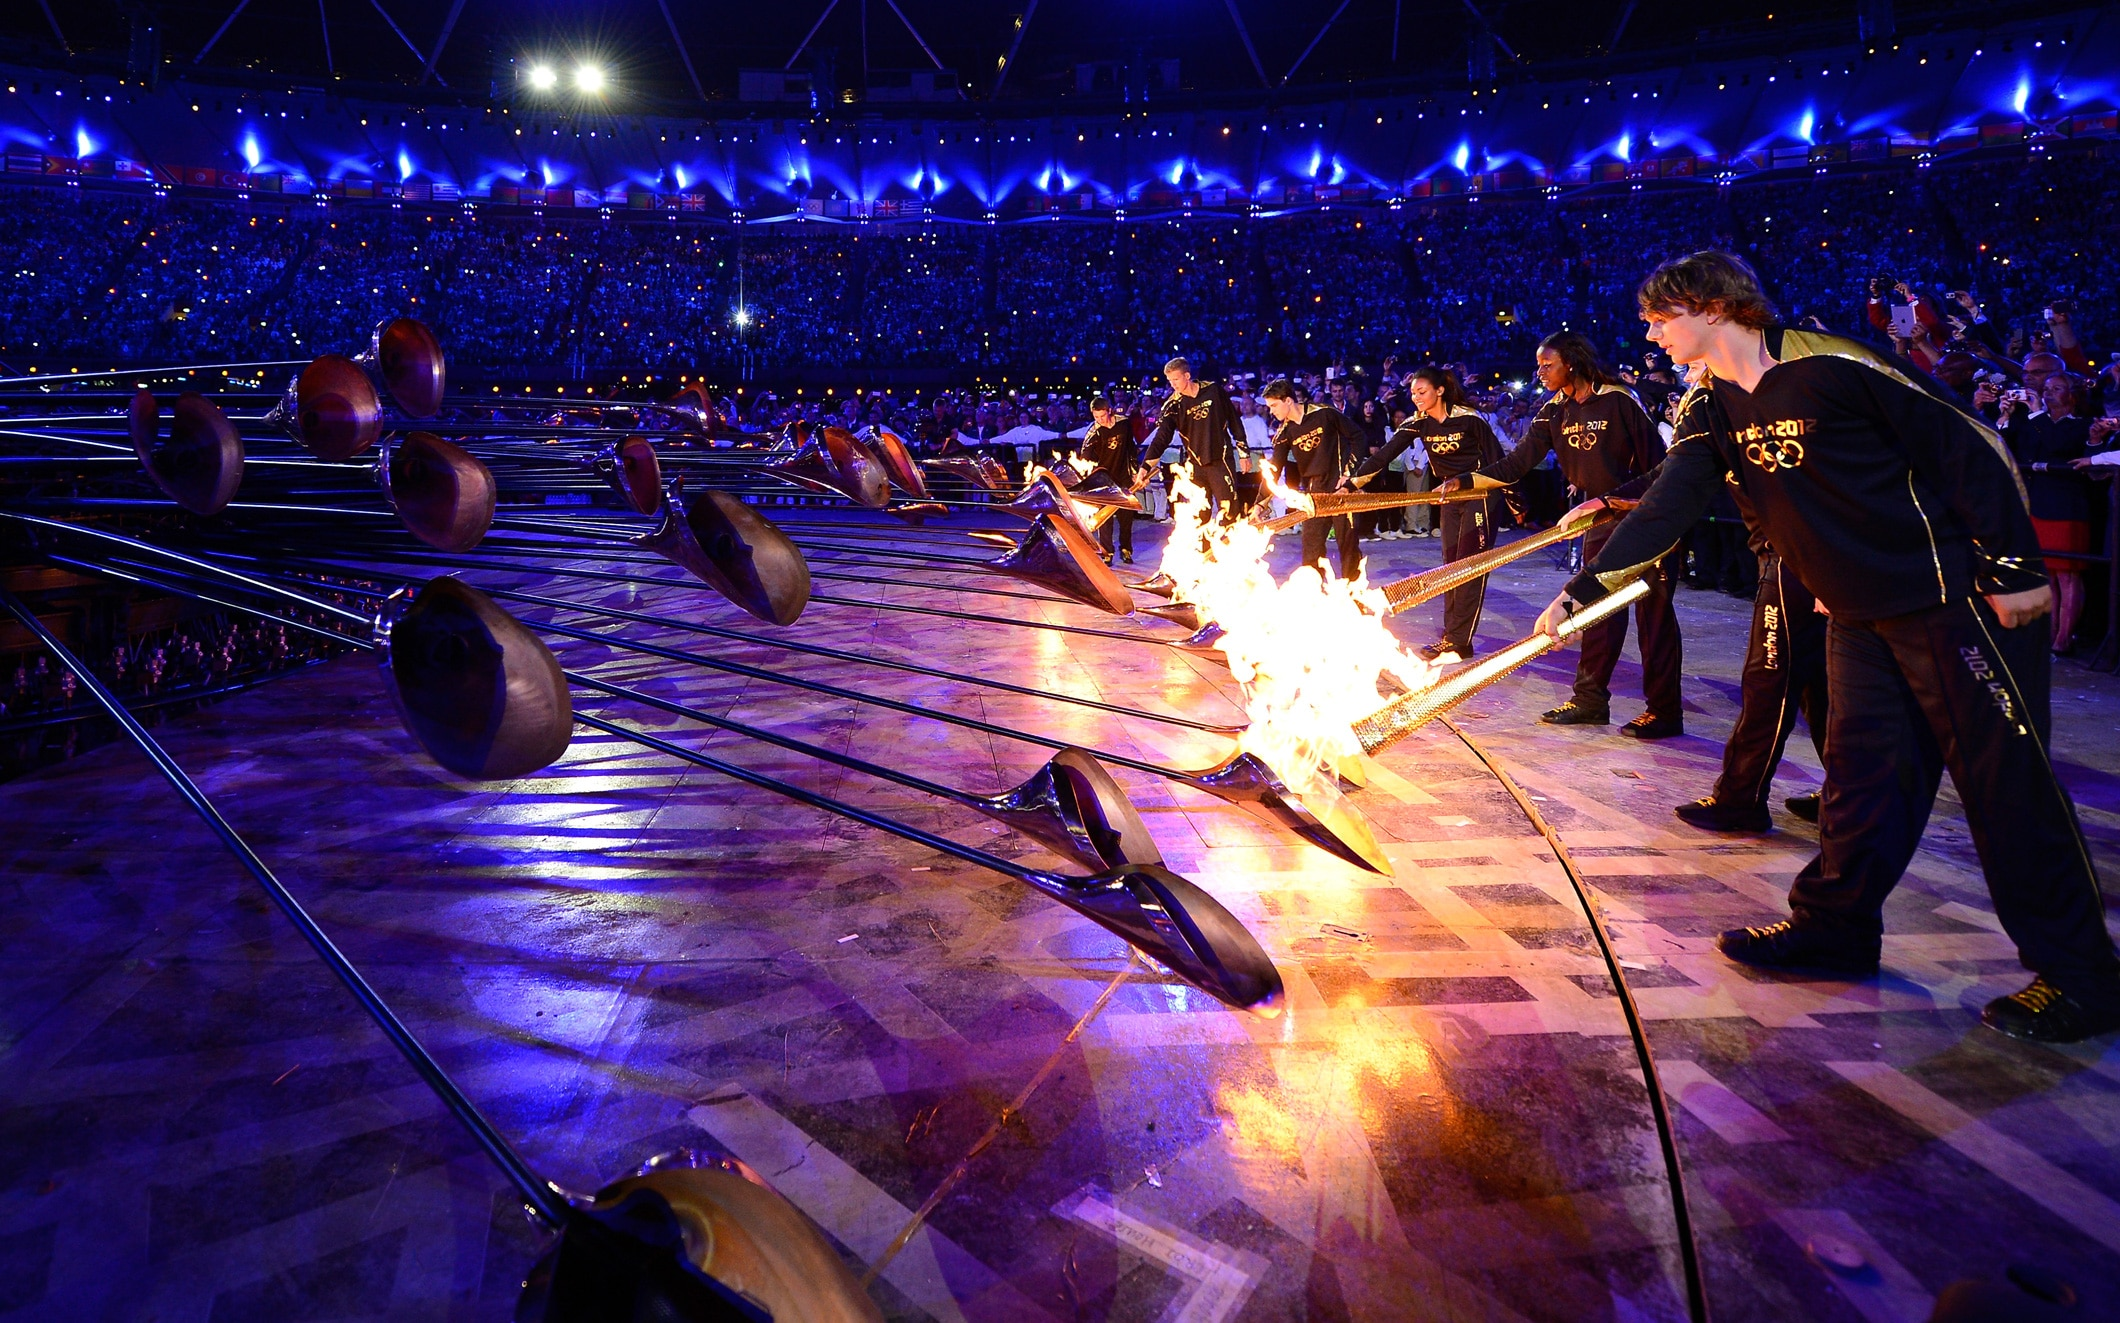 The Olympic Cauldron is lit during the Opening Ceremony of the London 2012